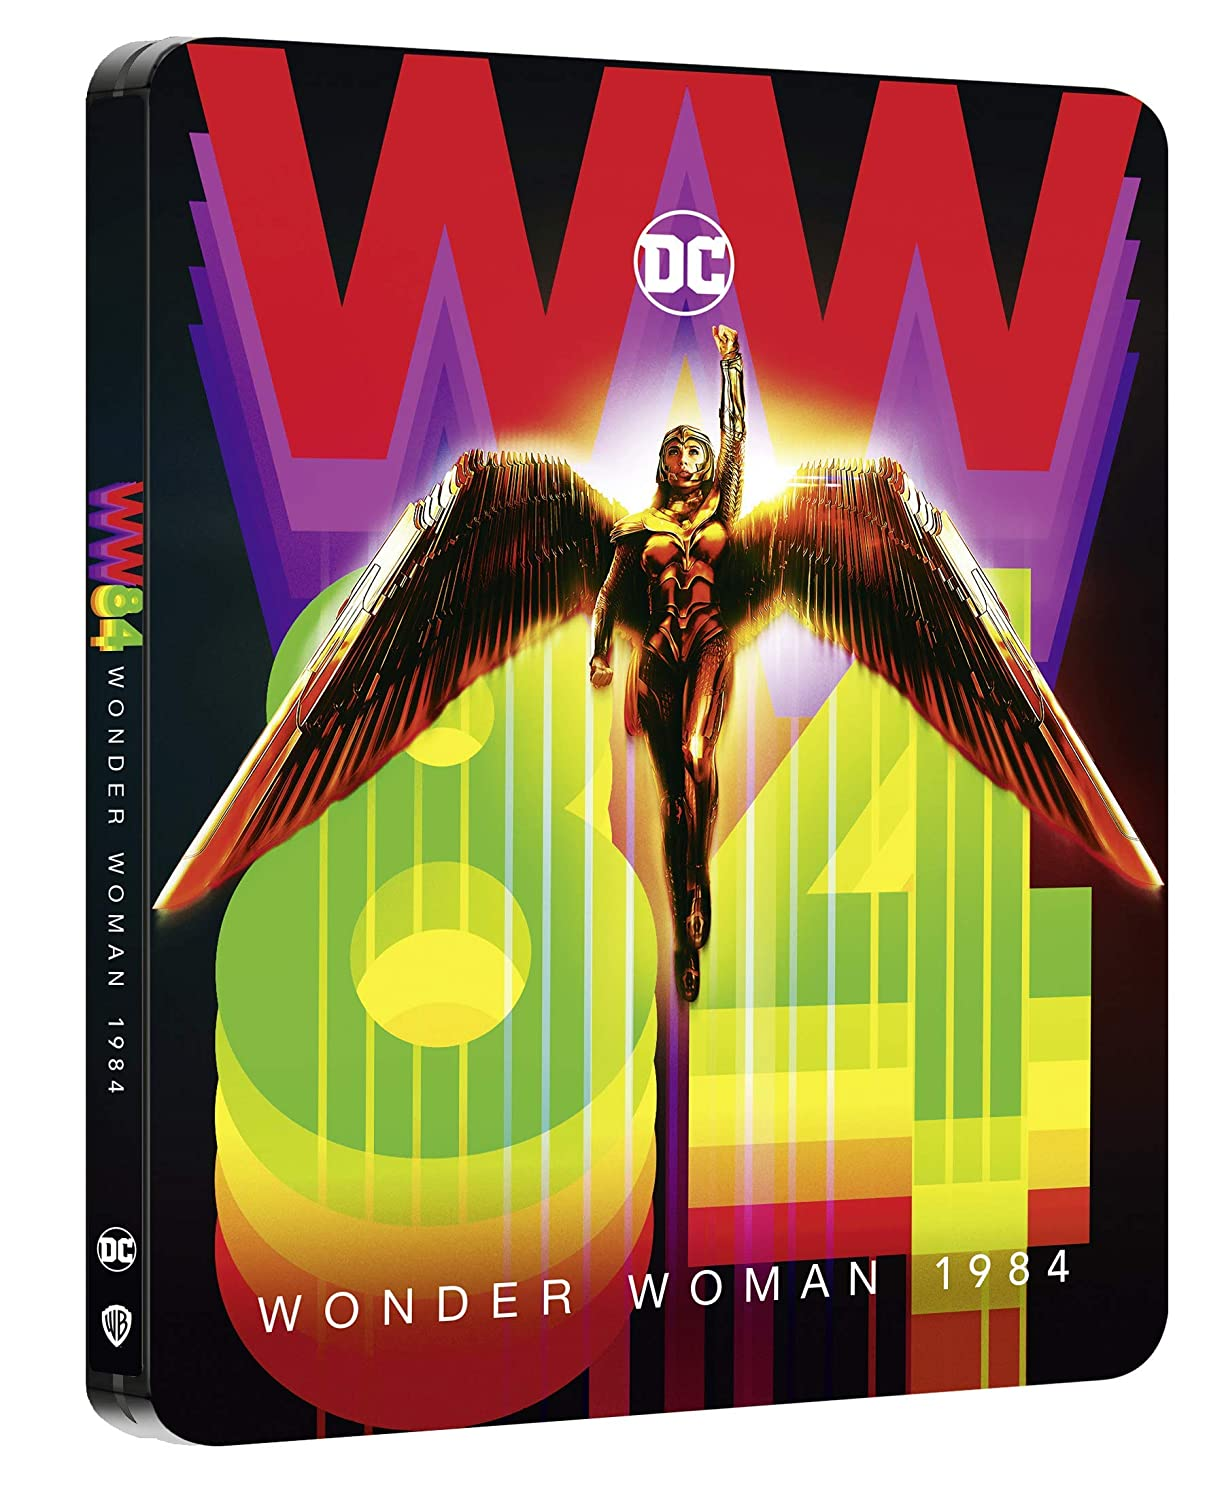 WONDER WOMAN 1984 STEELBOOK (4K ULTRA HD + BLU RAY)